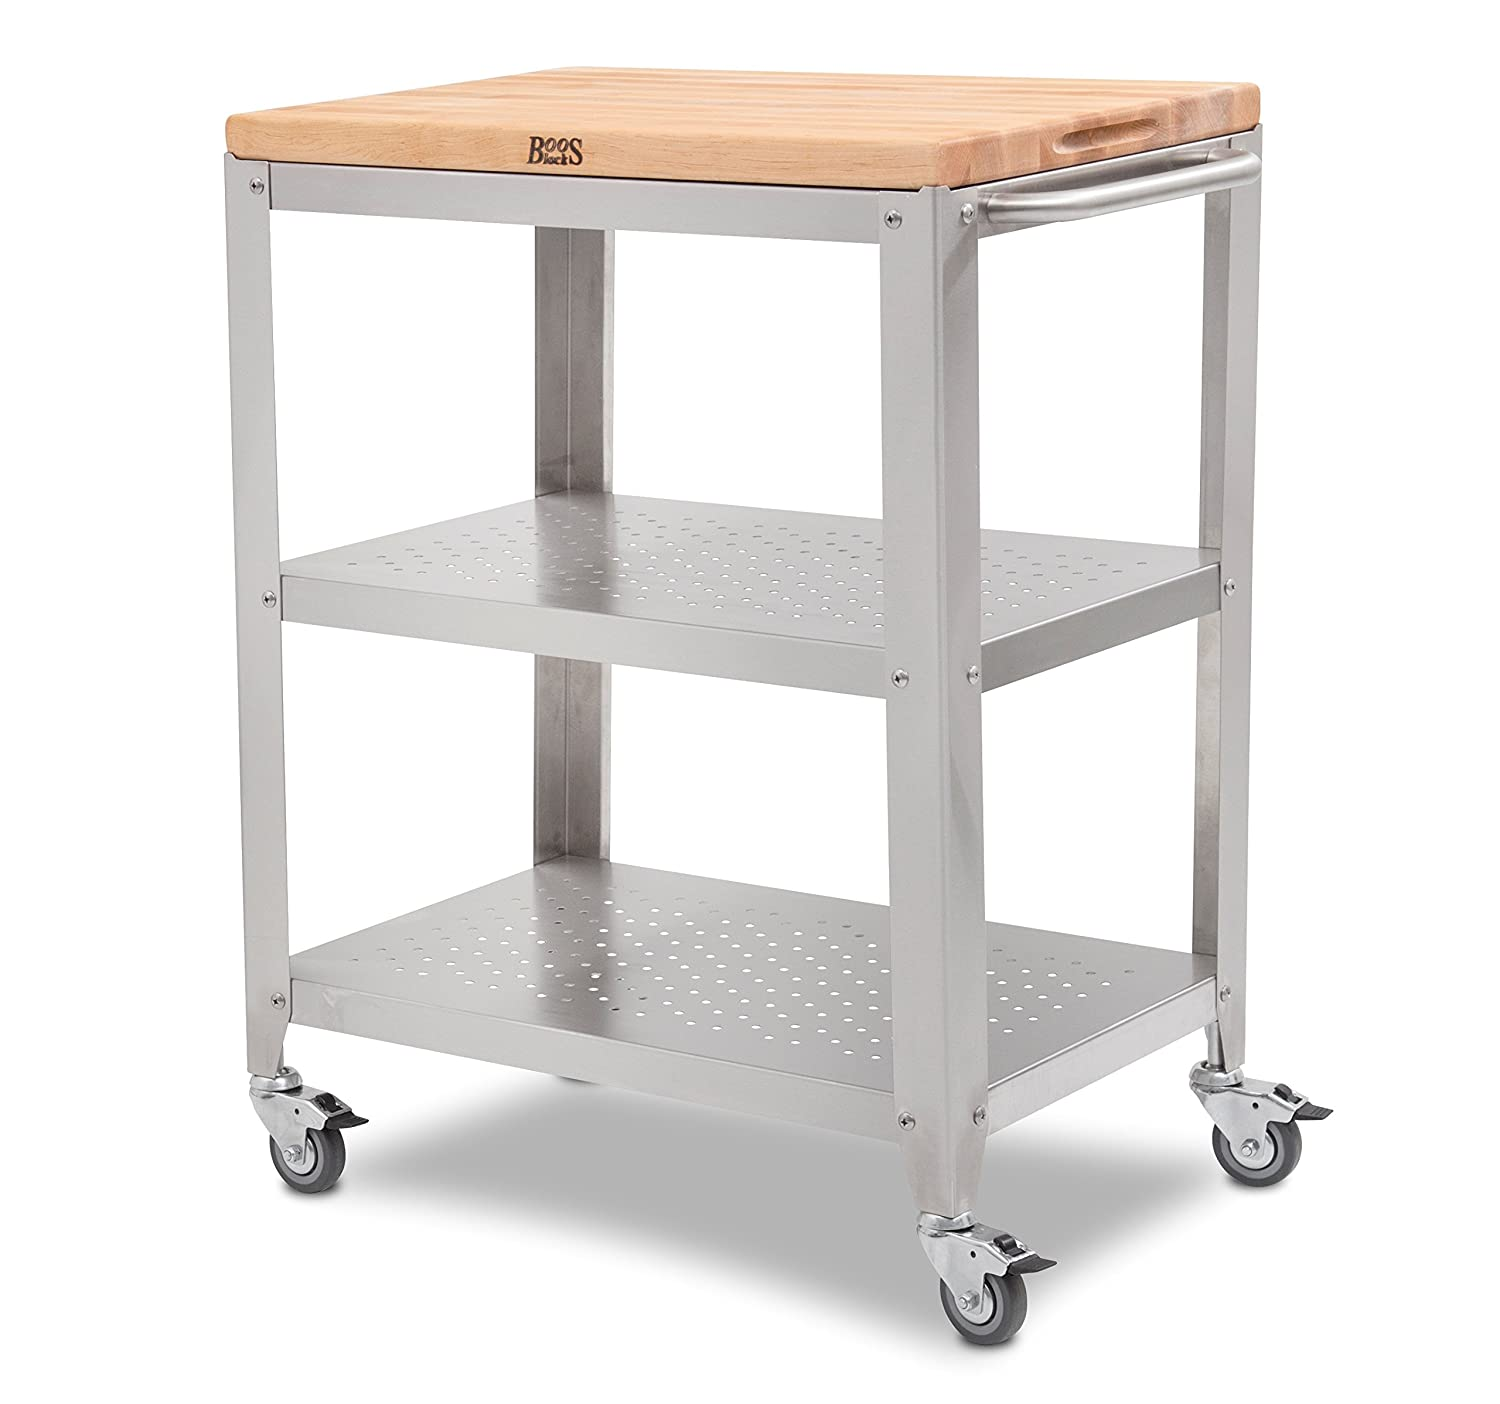 Amazon John Boos Culinarte Stainless Steel Kitchen Cart with